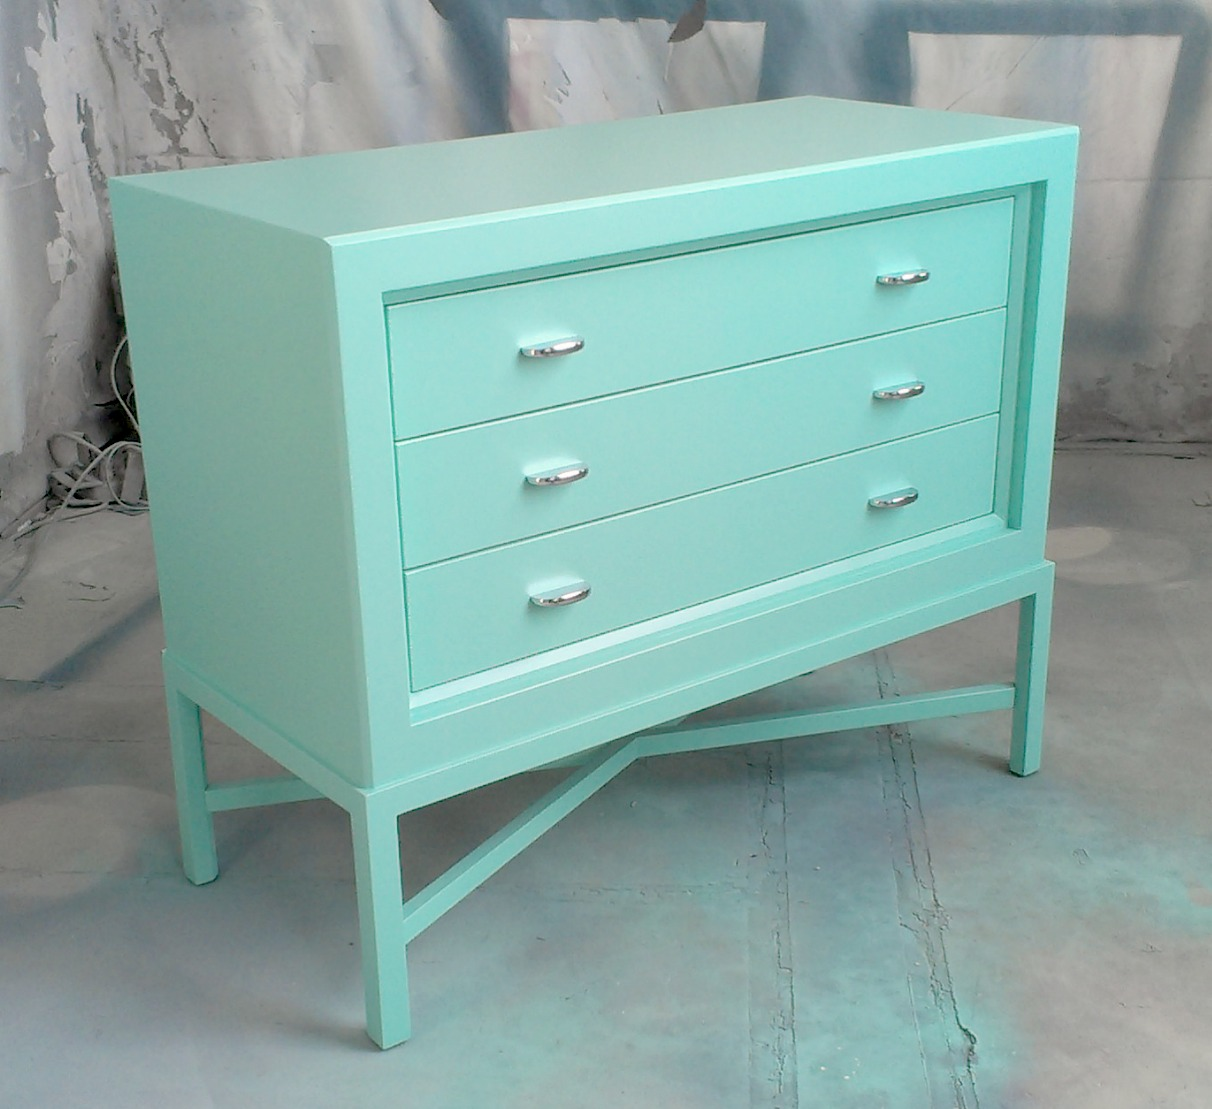 Painted Furniture: Turquoise Chest On Stand